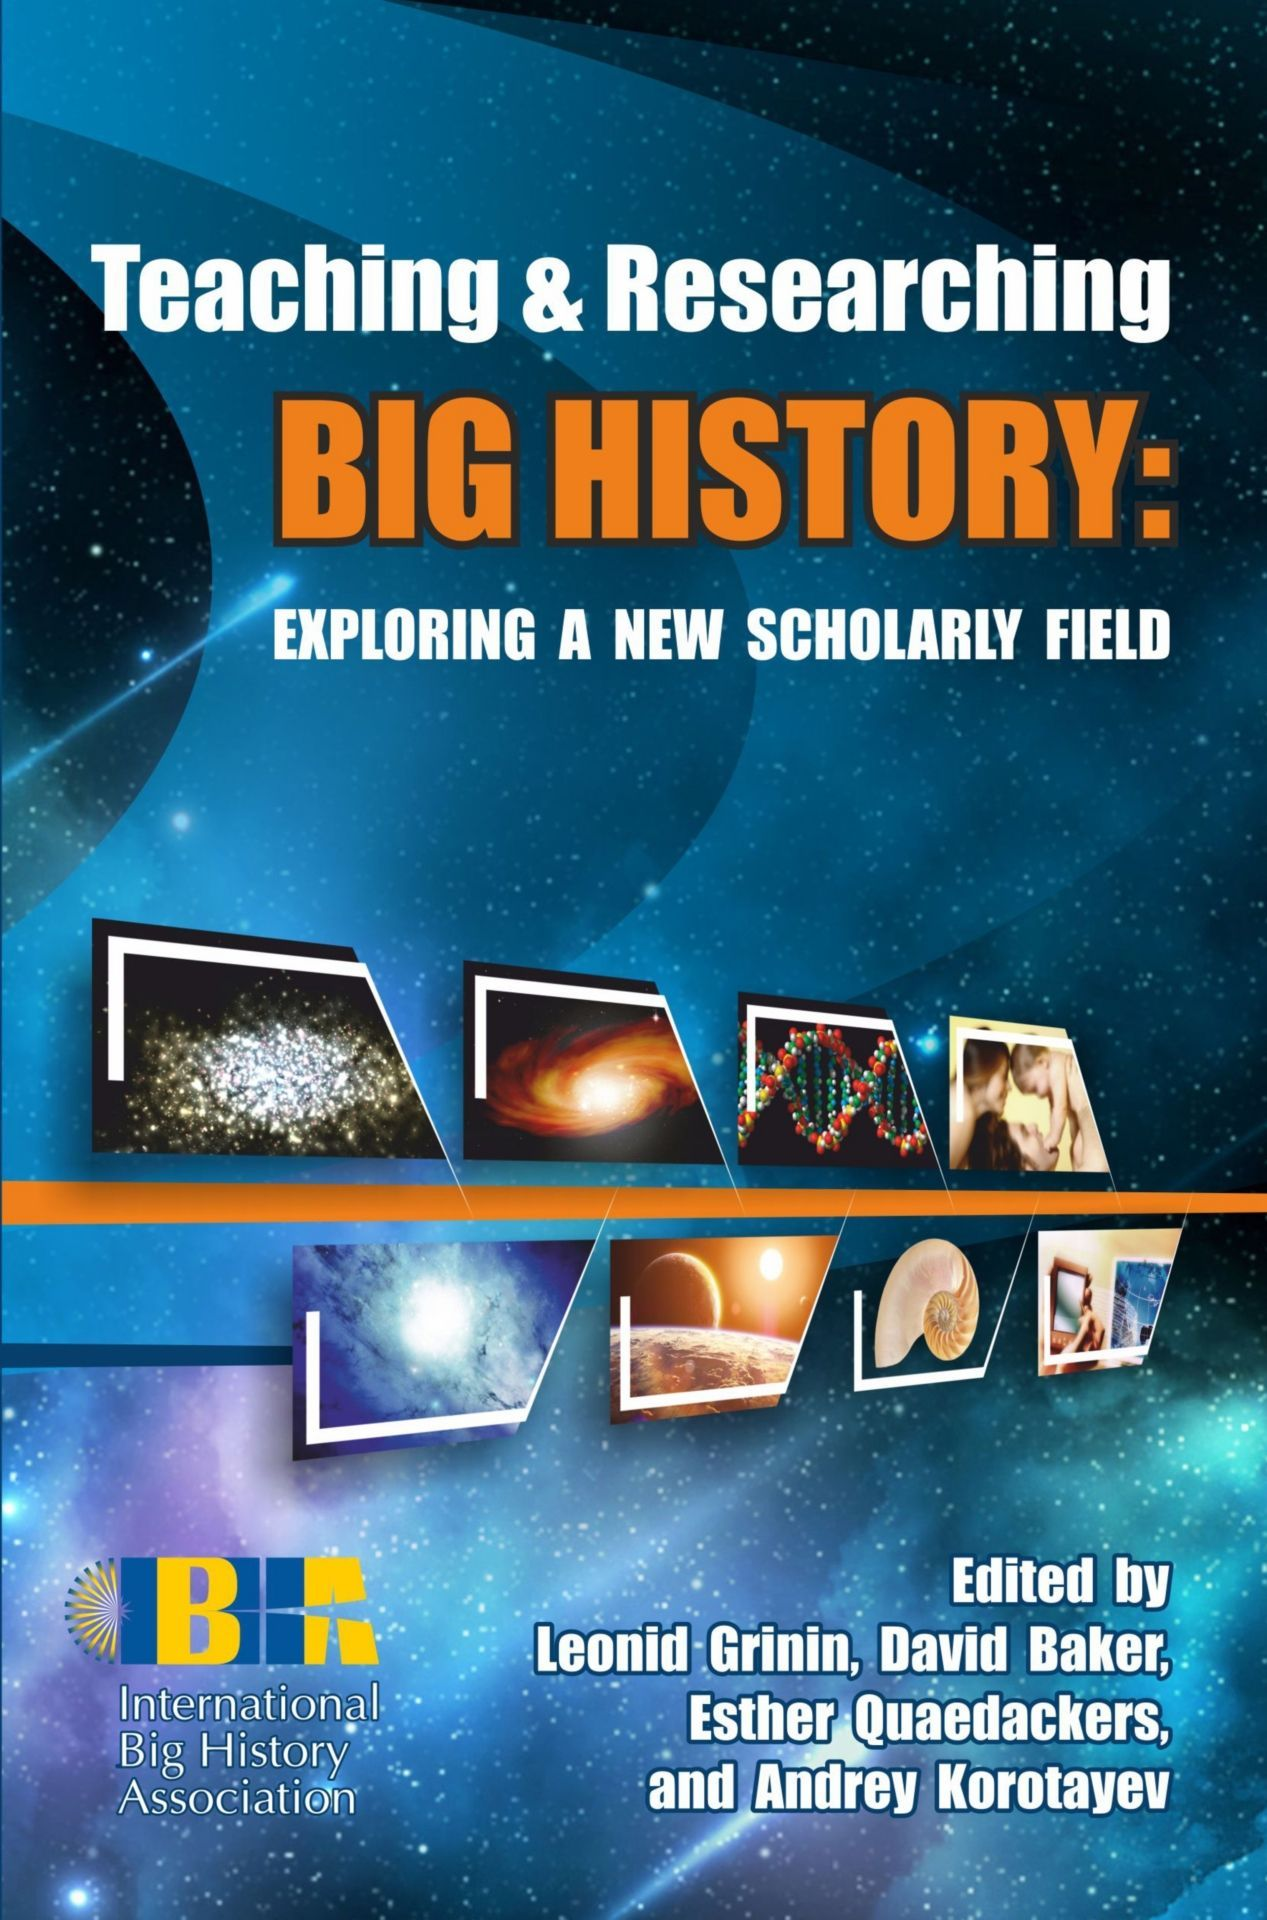 Teaching & Researching Big History: Exploring a New Scholarly Field